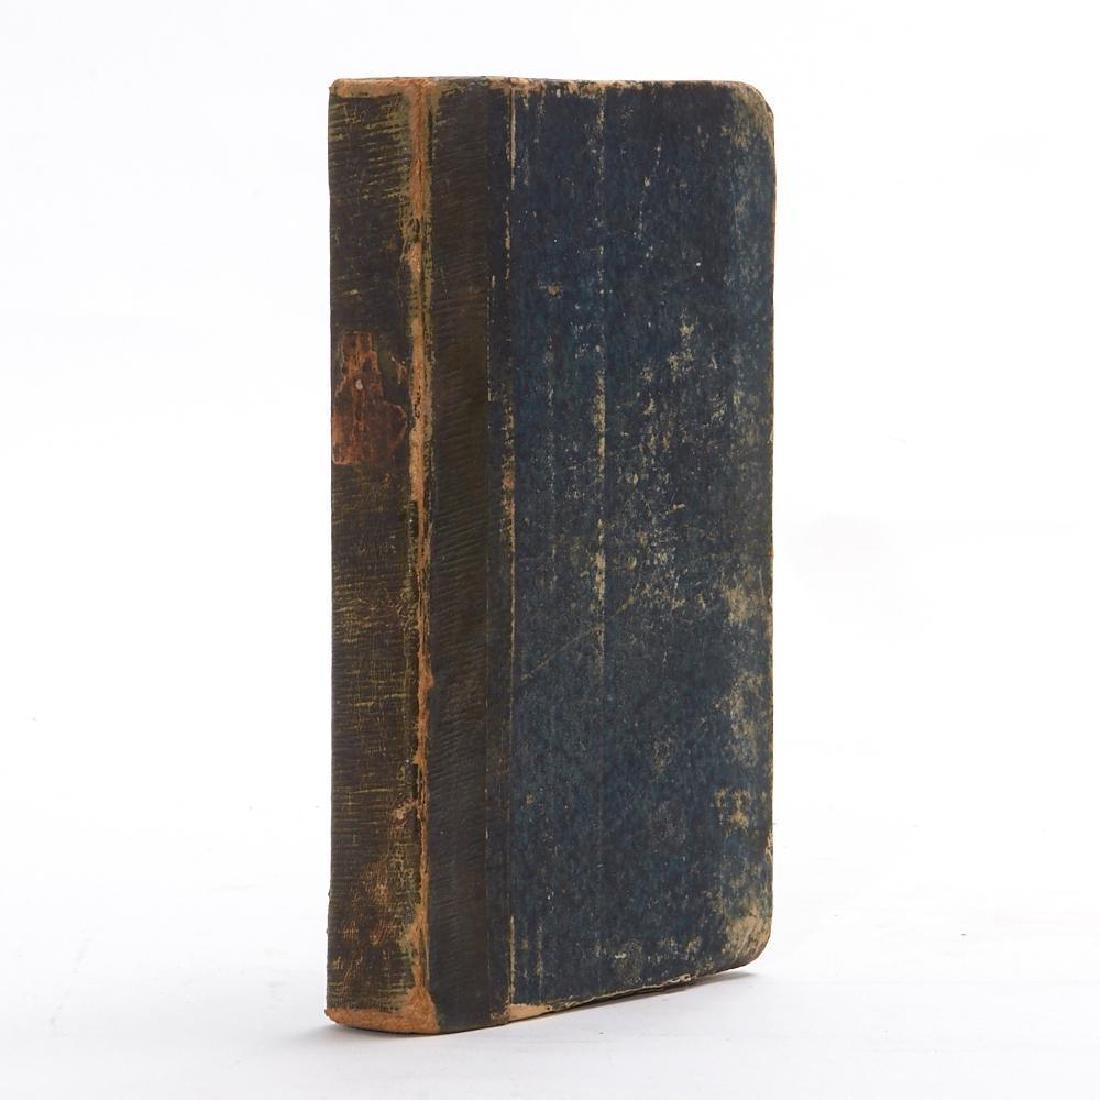 John Clare Poems: Descriptive of Rural Life and Scenery